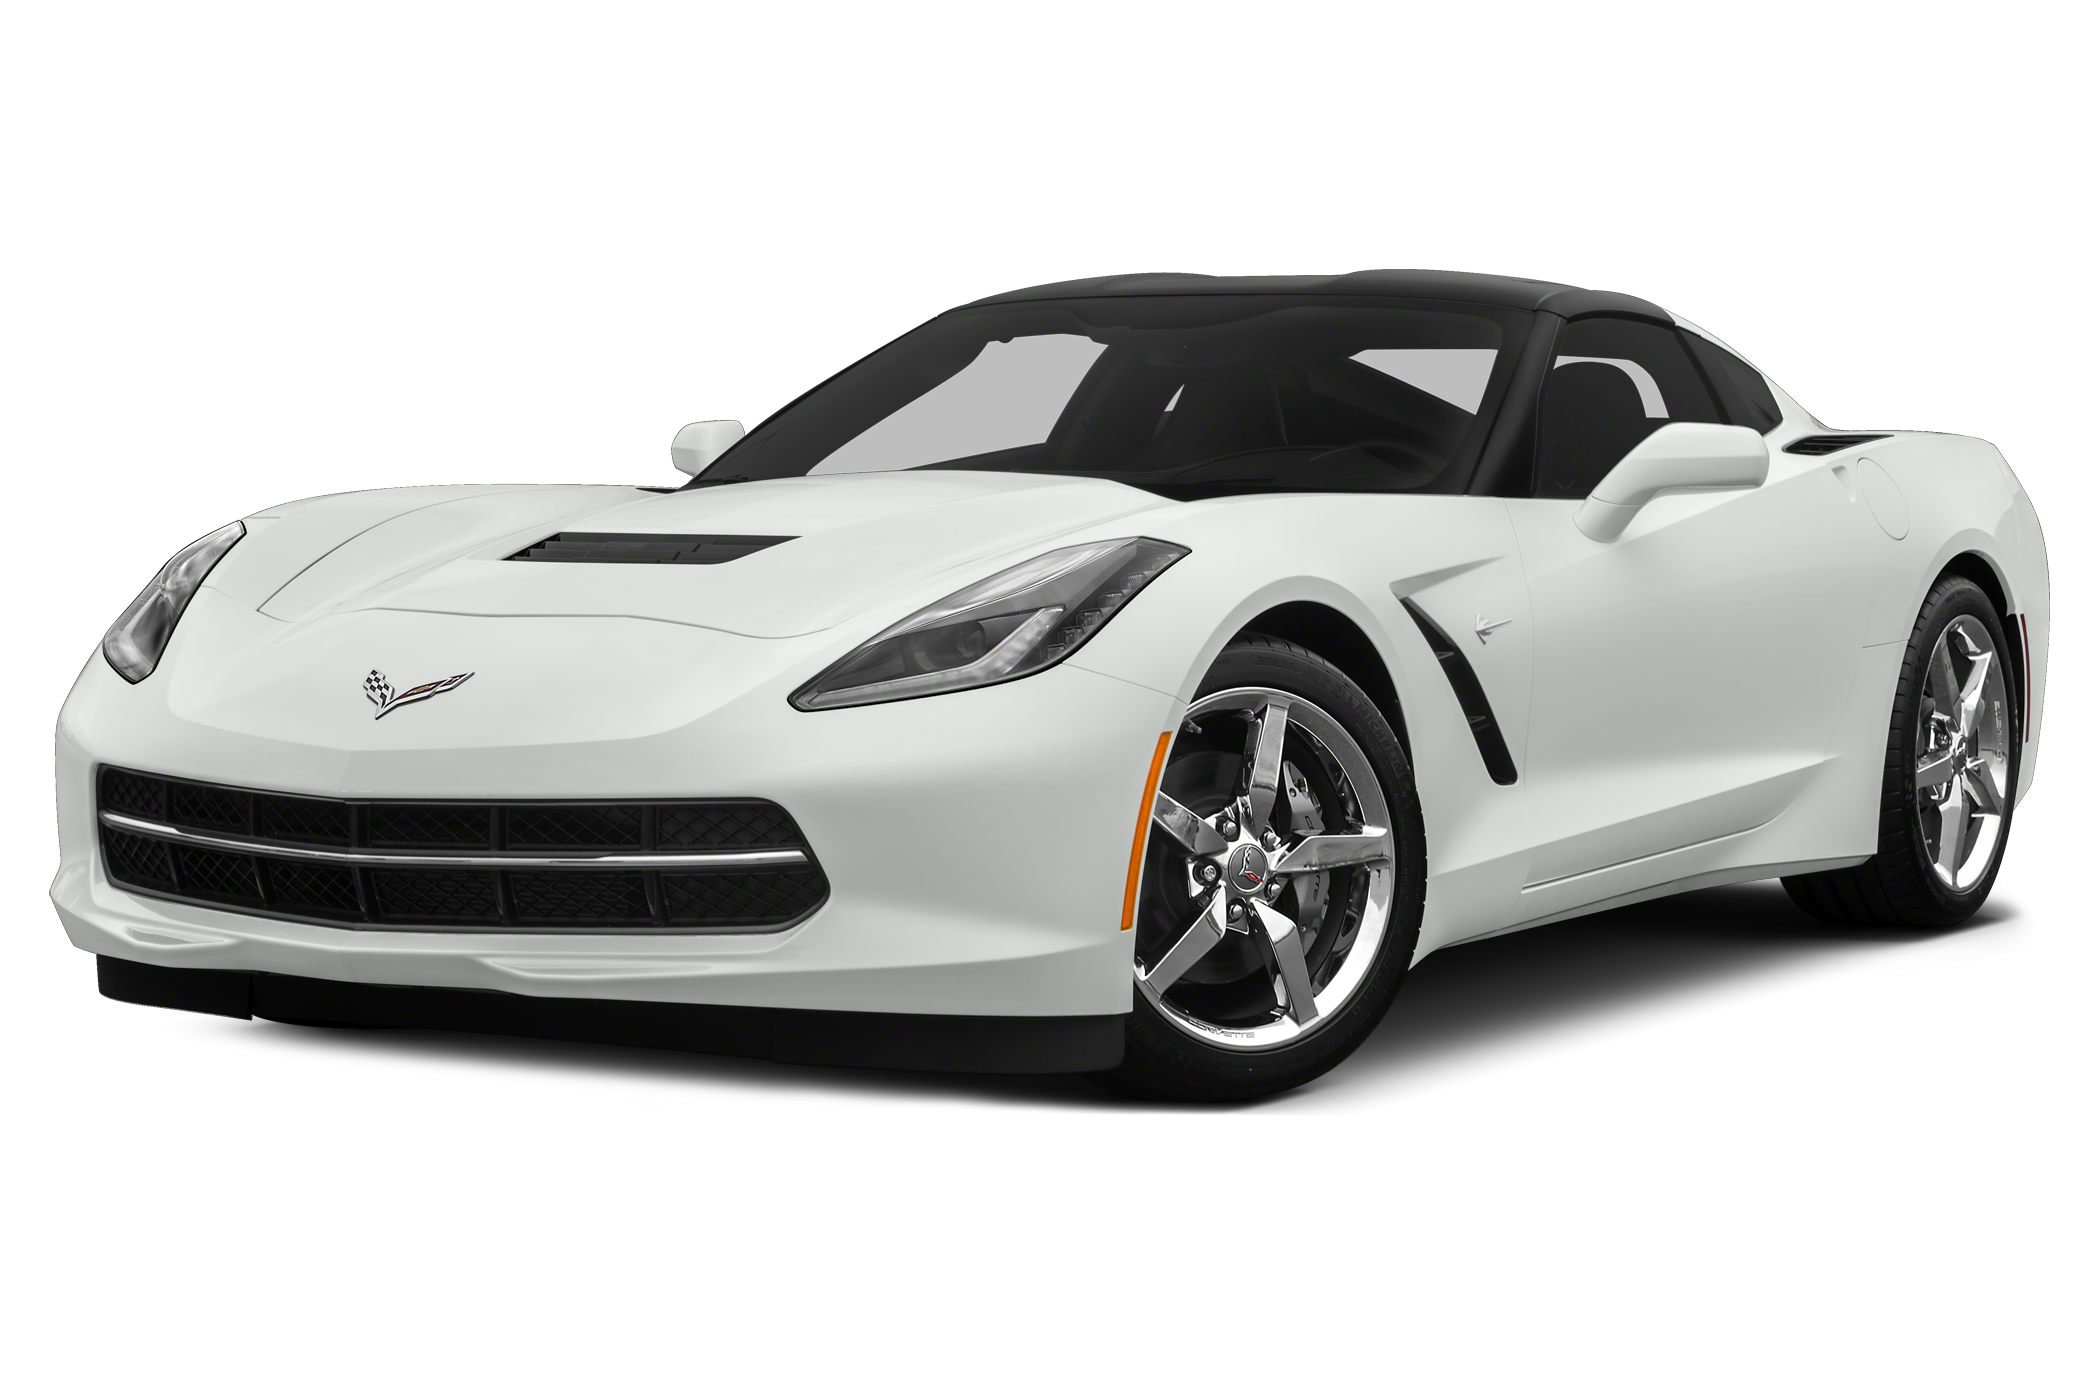 2015 Chevrolet Corvette Stingray Z51 Coupe for sale in Eugene for $69,870 with 4 miles